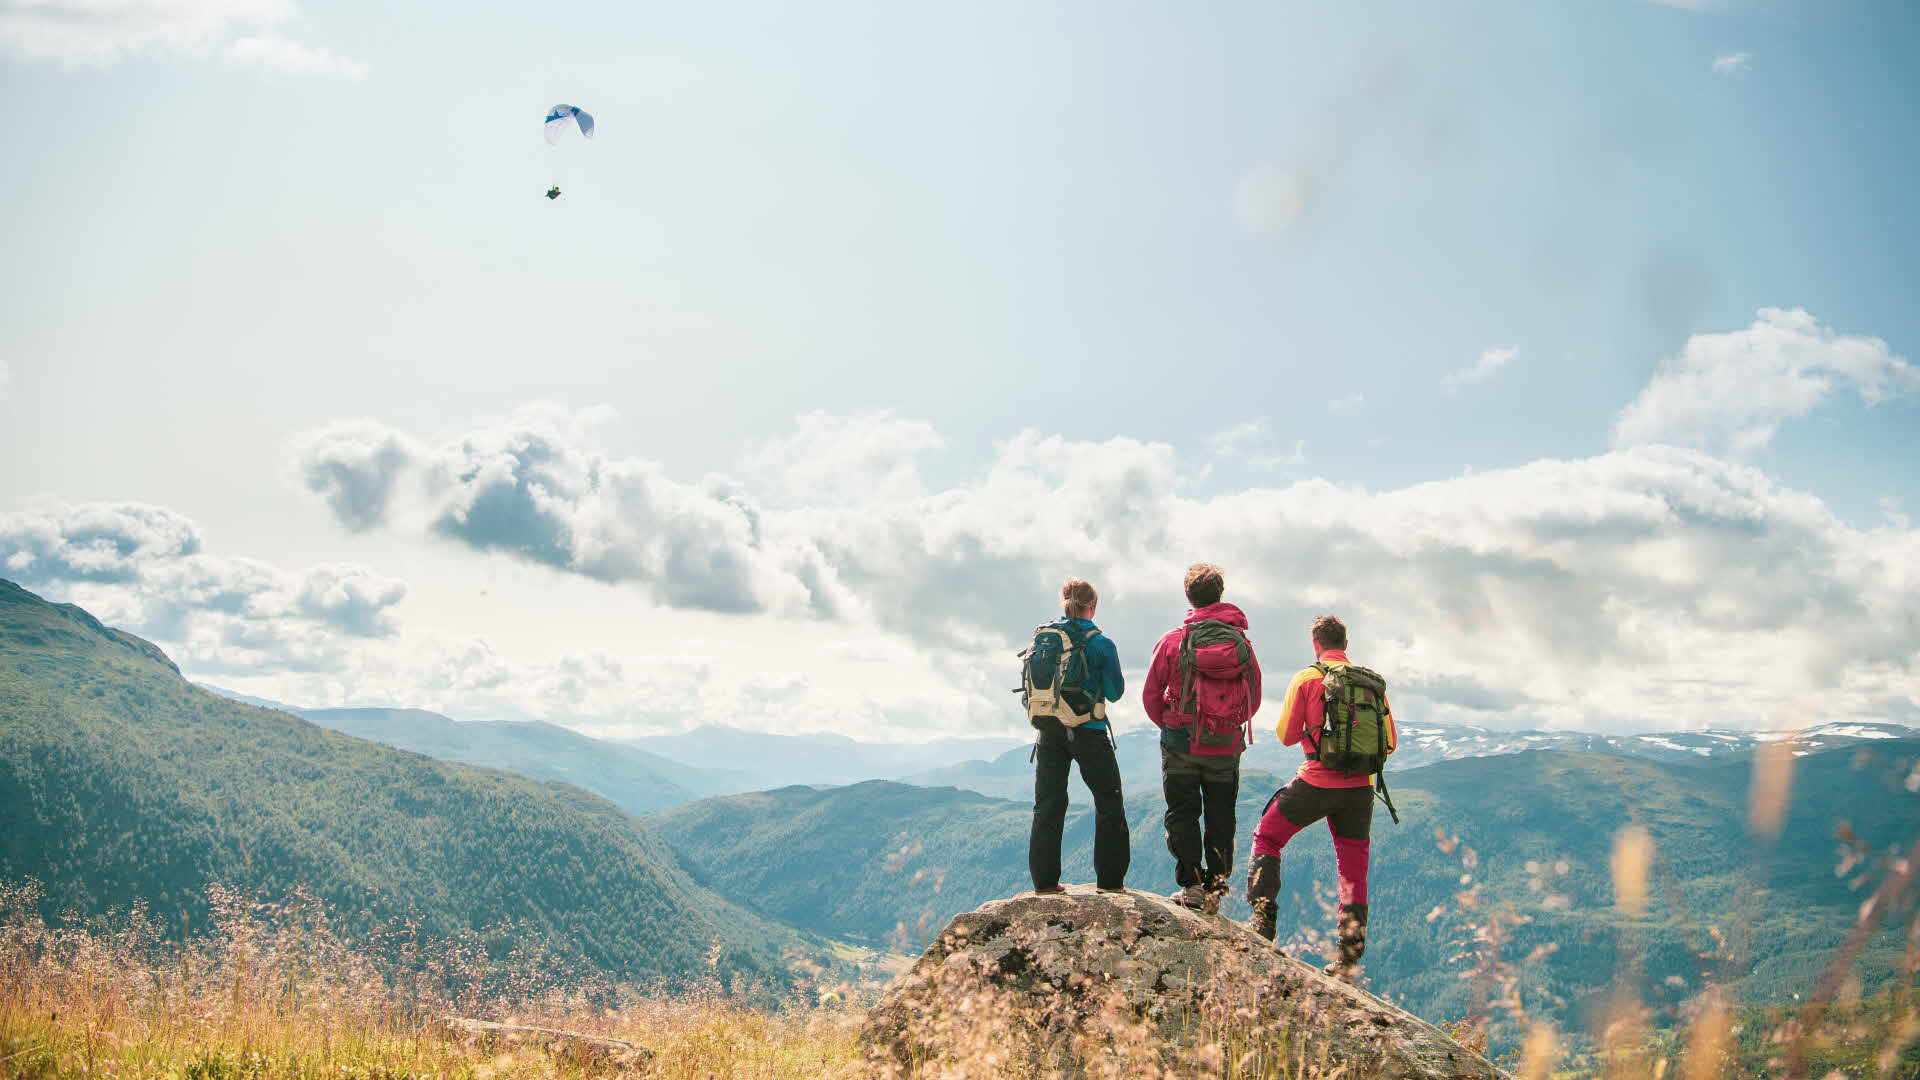 Three people standing on a rock and looking across Myrkdalen, with a paraglider flying over